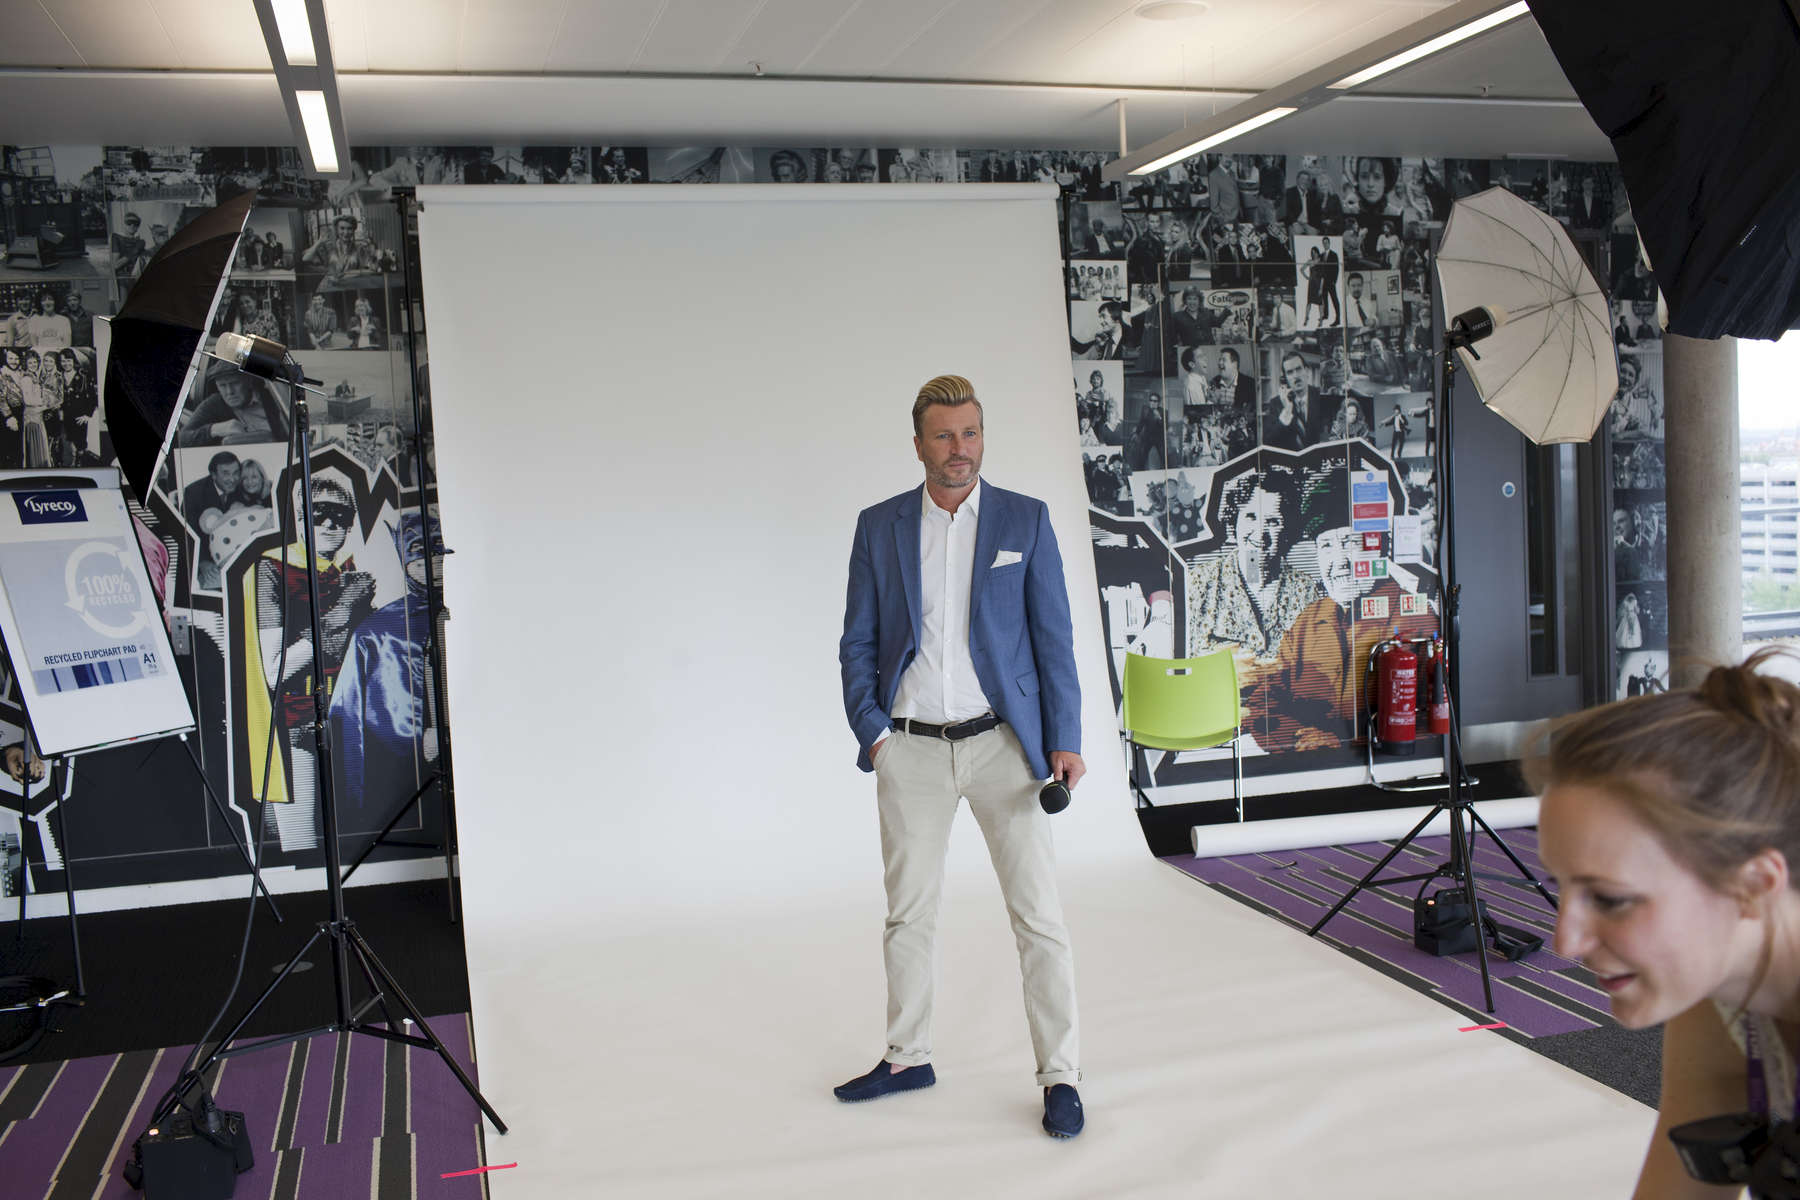 Former footballer and now presenter Robbie Savage has publicity photographs taken for the BBC.Match of the Day (often abbreviated as MOTD or MotD) is the BBC\'s main football television programme. Typically, it is shown on BBC One on Saturday evenings during the English football season, showing highlights of the day\'s matches in English football\'s top division, the Premier League. It is one of the BBC\'s longest-running shows, having been on air since 22 August 1964, though it has not always been aired regularly. The programme is broadcast from MediaCityUK in Salford Quays on the banks of the Manchester Ship Canal in Greater Manchester.Since 1999 MOTD has been presented by the former England captain Gary Lineker. Lineker is usually joined by two pundits to analyse and review the day\'s action. The former Newcastle United captain Alan Shearer is the lead pundit